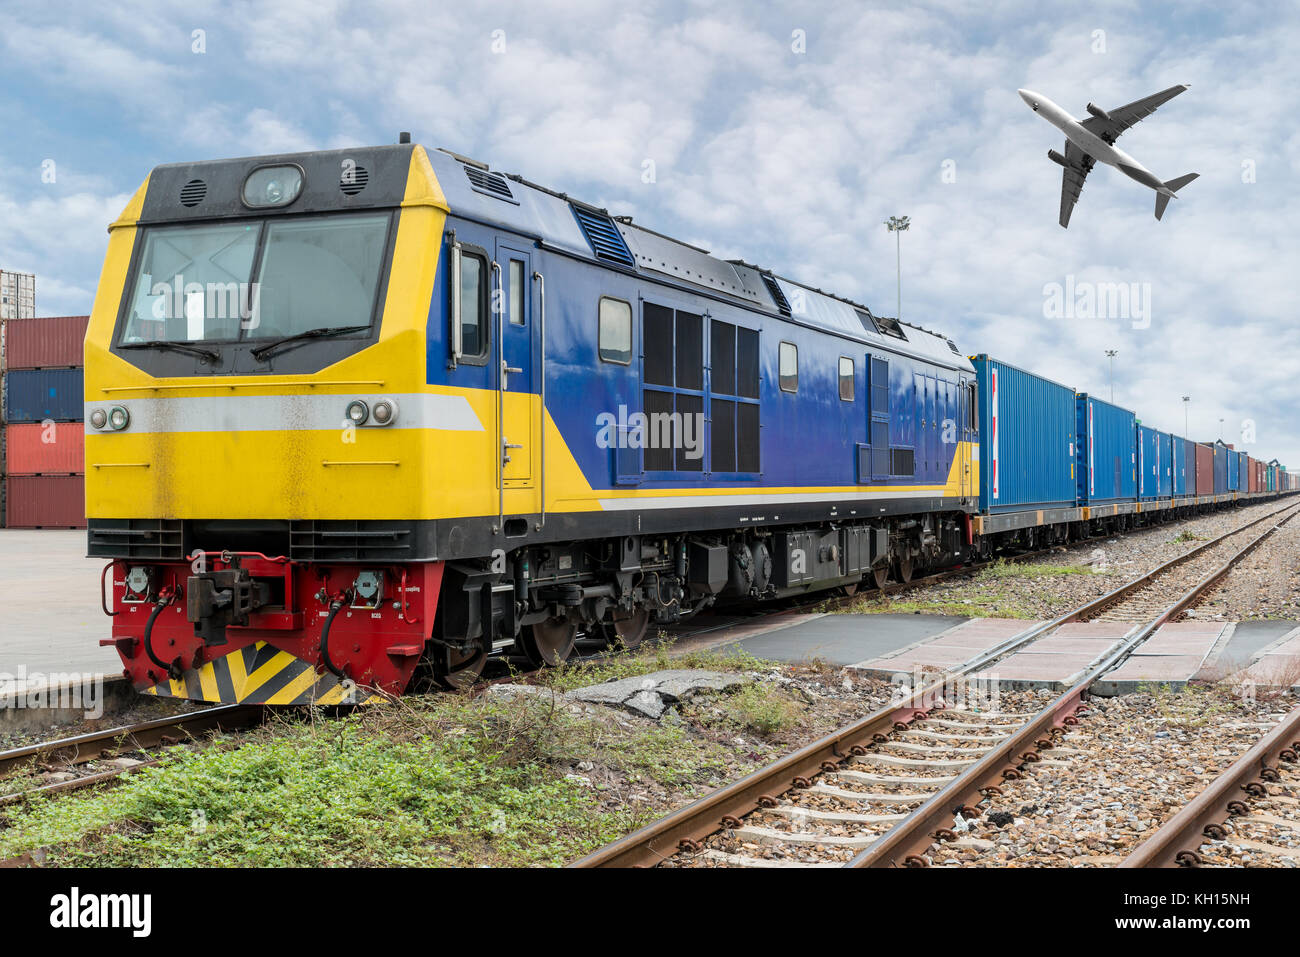 Cargo train platform with freight train container with cargo airplane at depot in port use for export logistics - Stock Image